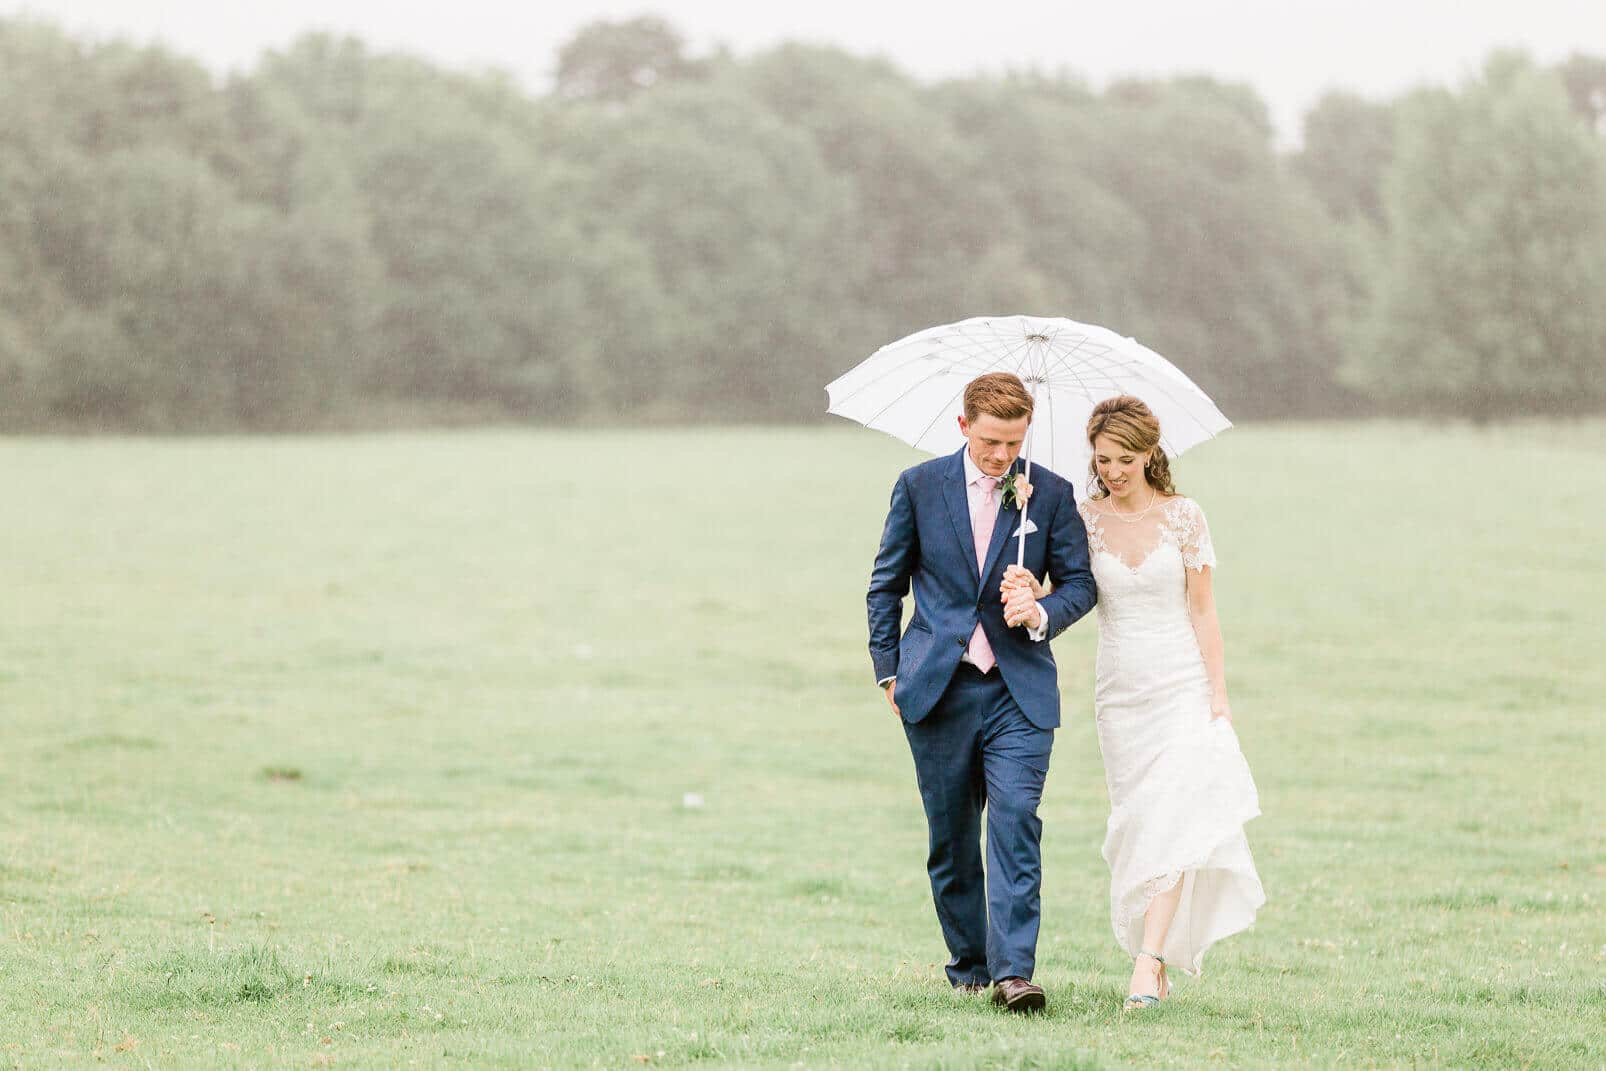 East Sussex wedding photographer at Anchor Inn in Lewes on rainy day